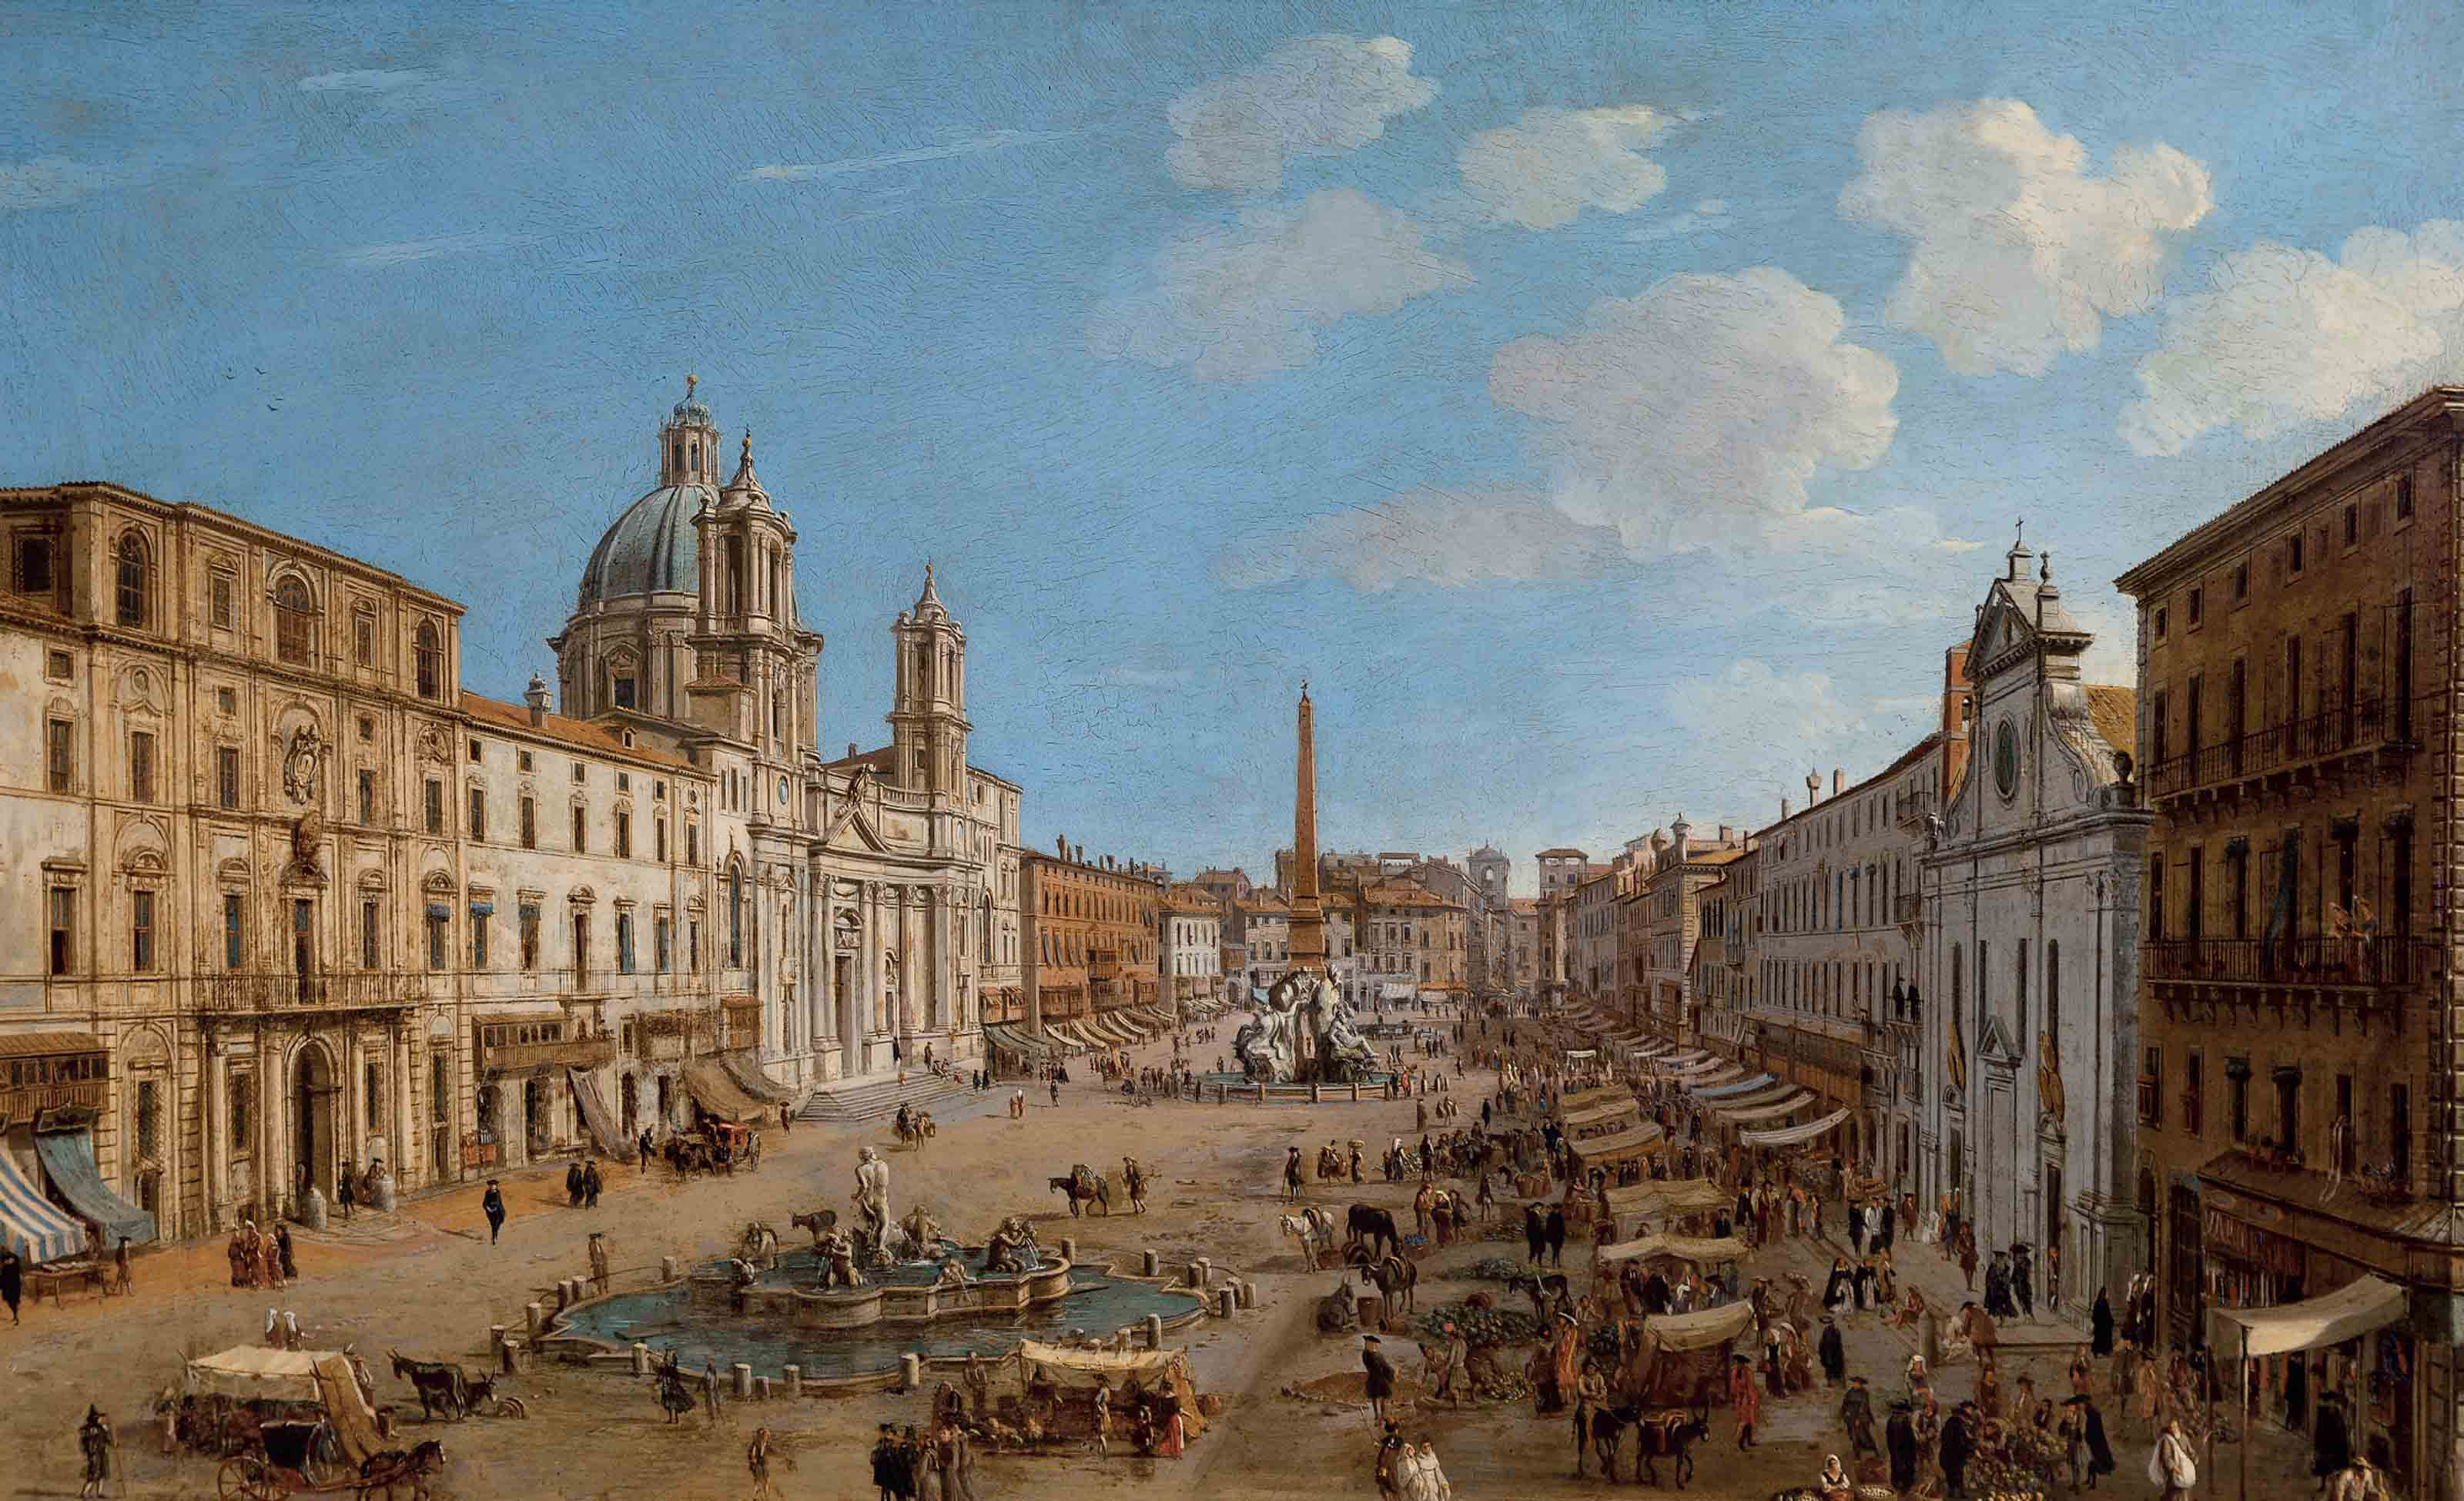 The Piazza Navona, Rome